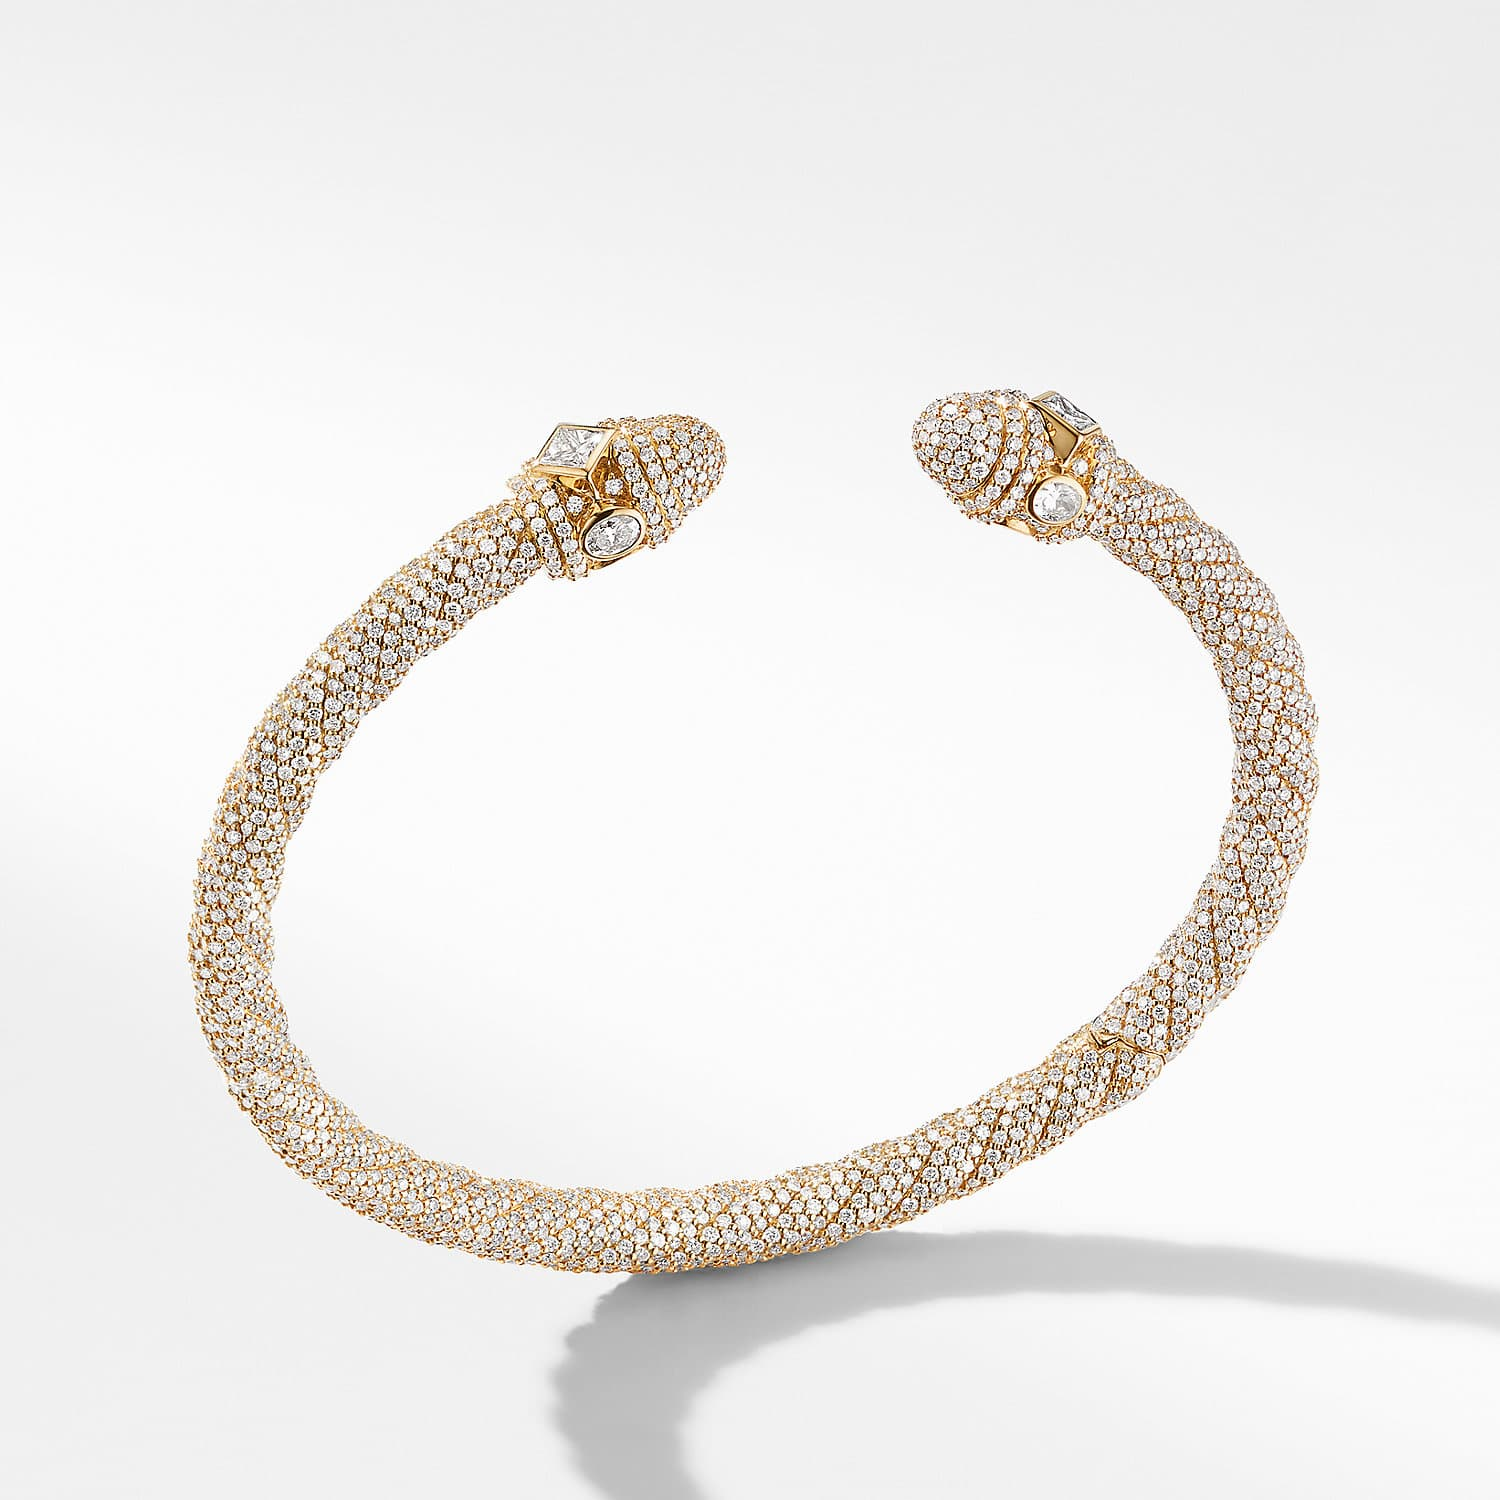 5a730355482e Renaissance Bracelet in 18K Yellow Gold with Diamonds Product Image